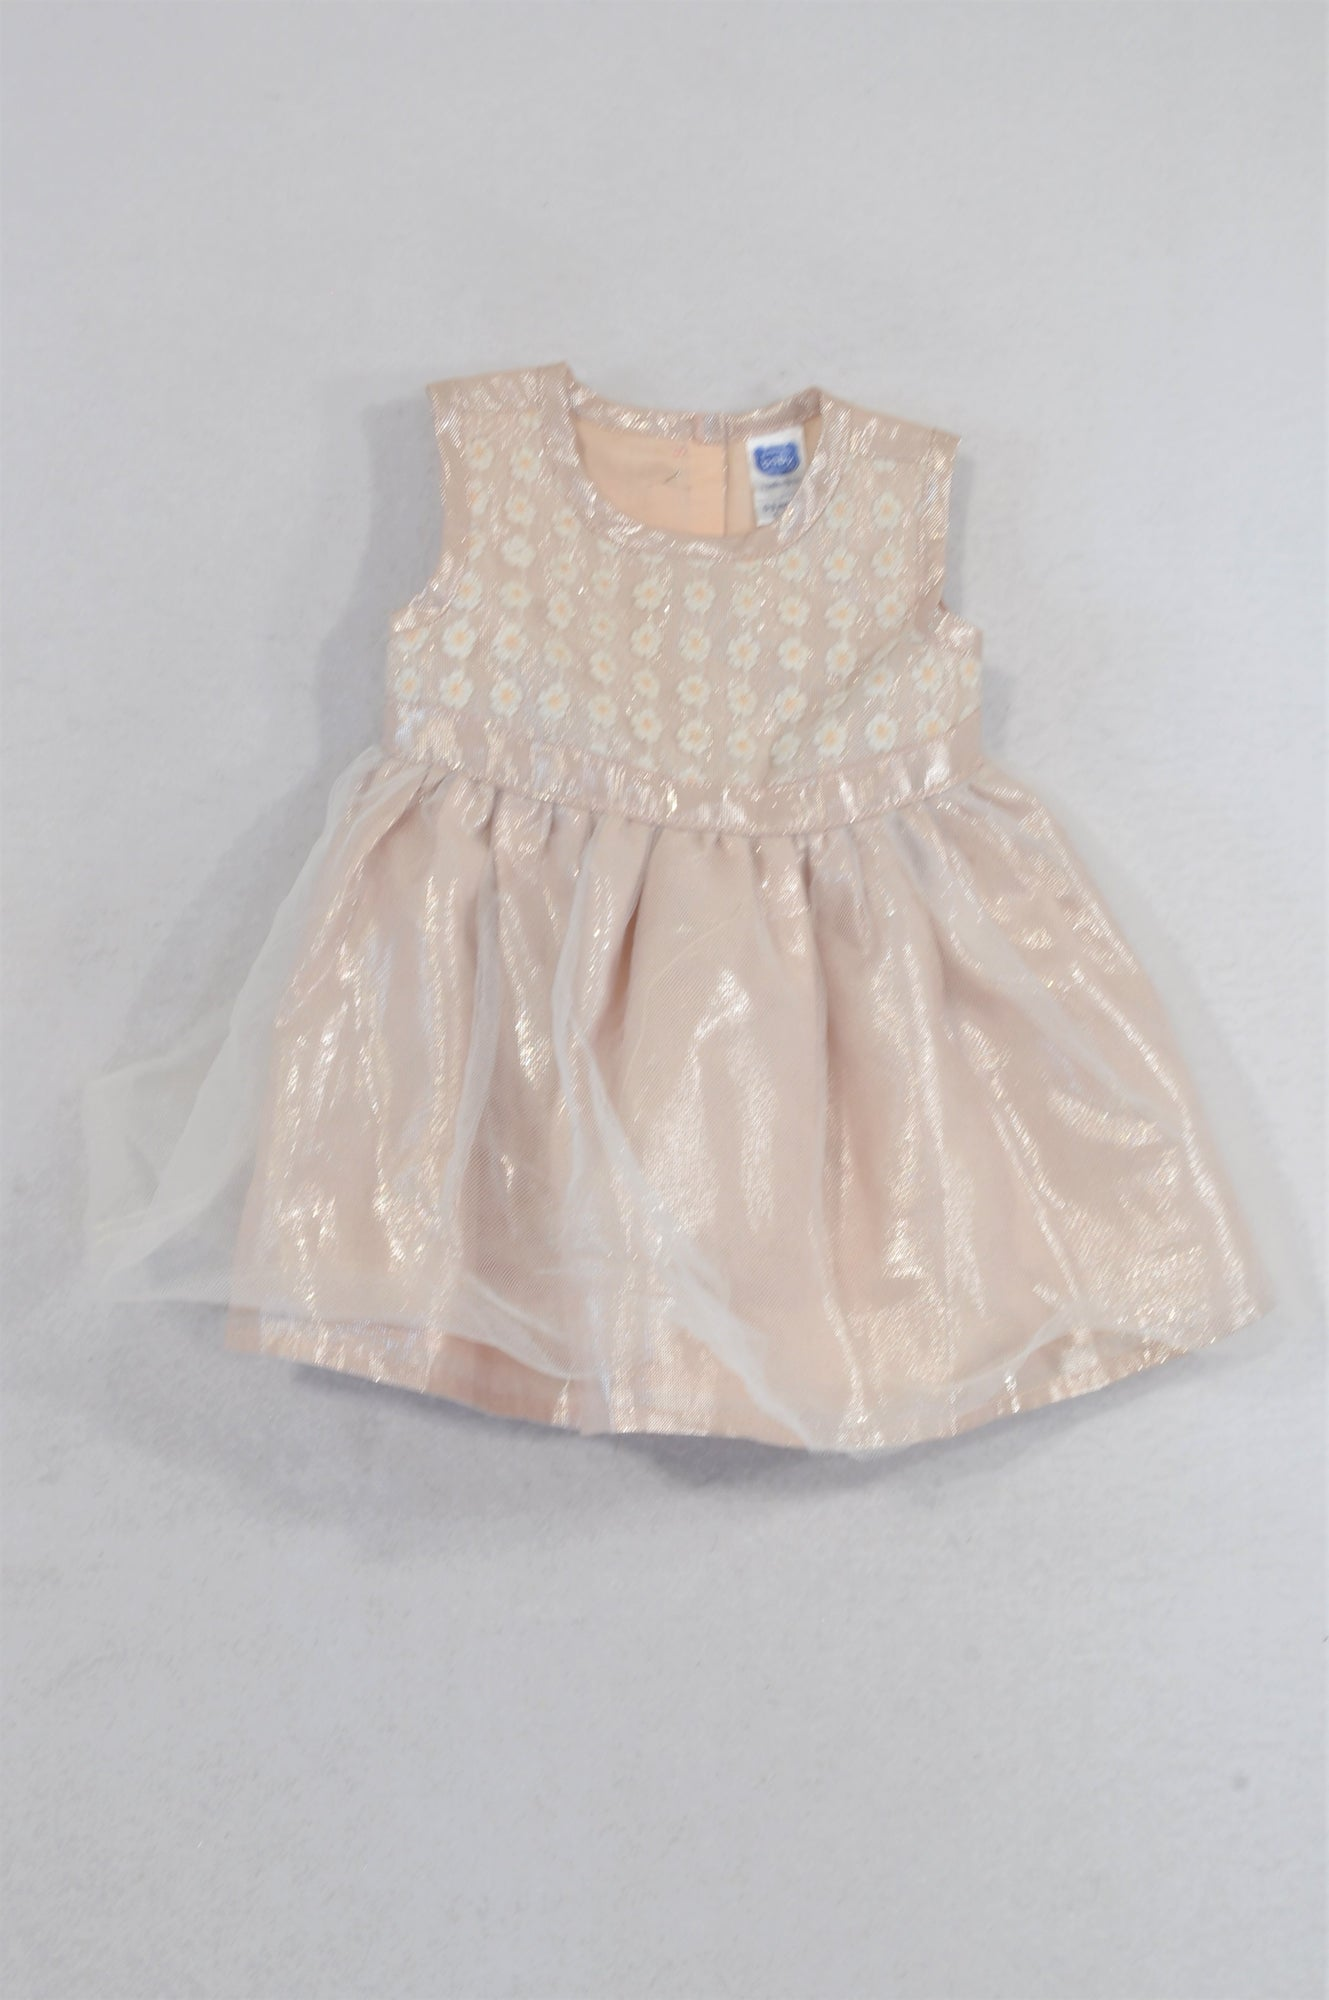 Ackermans Metallic Dusty Pink Daisy Dress Girls 0-3 months